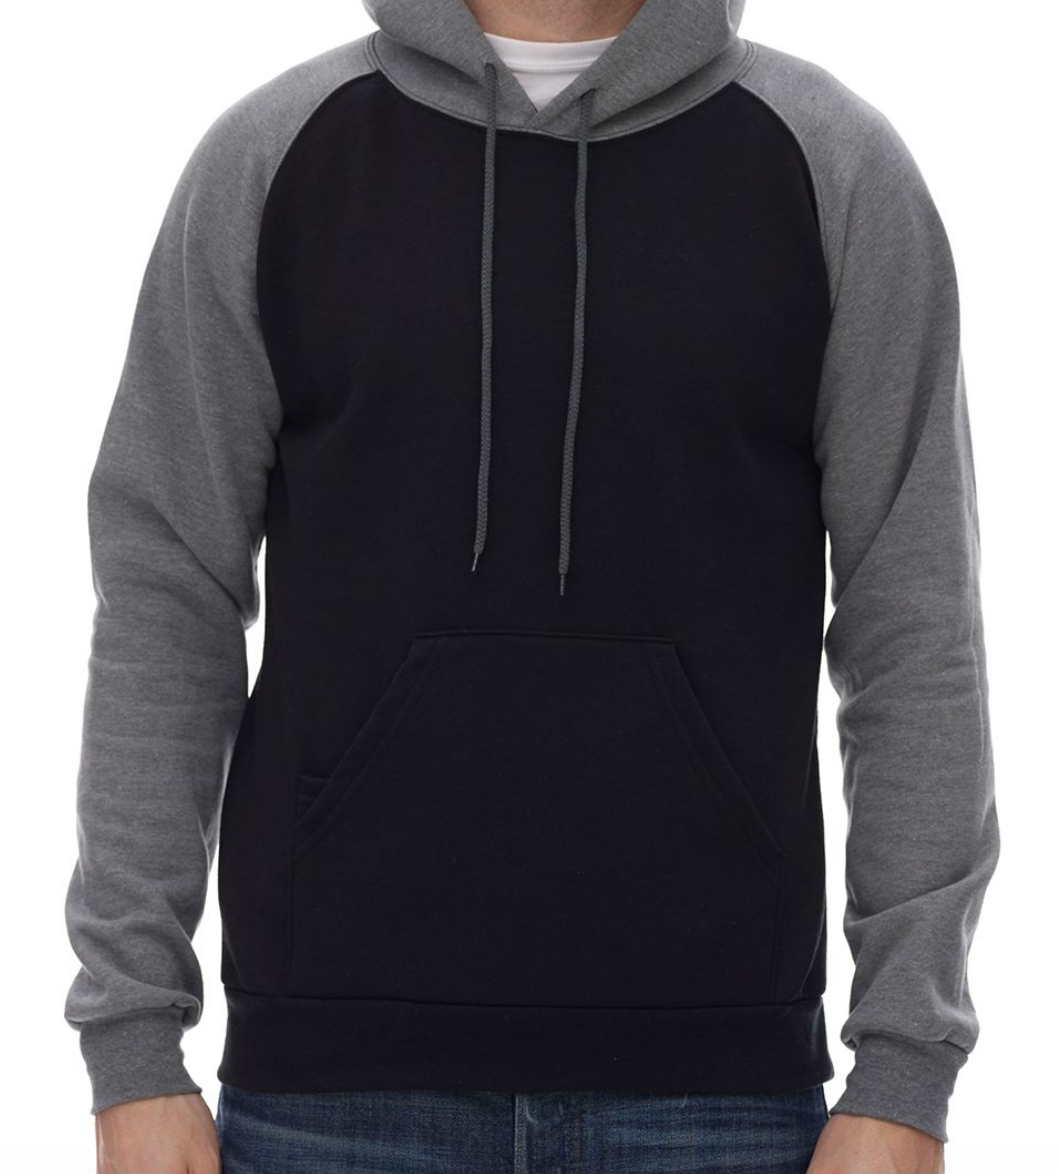 King Fashion - Fleece Raglan Hooded Sweatshirt